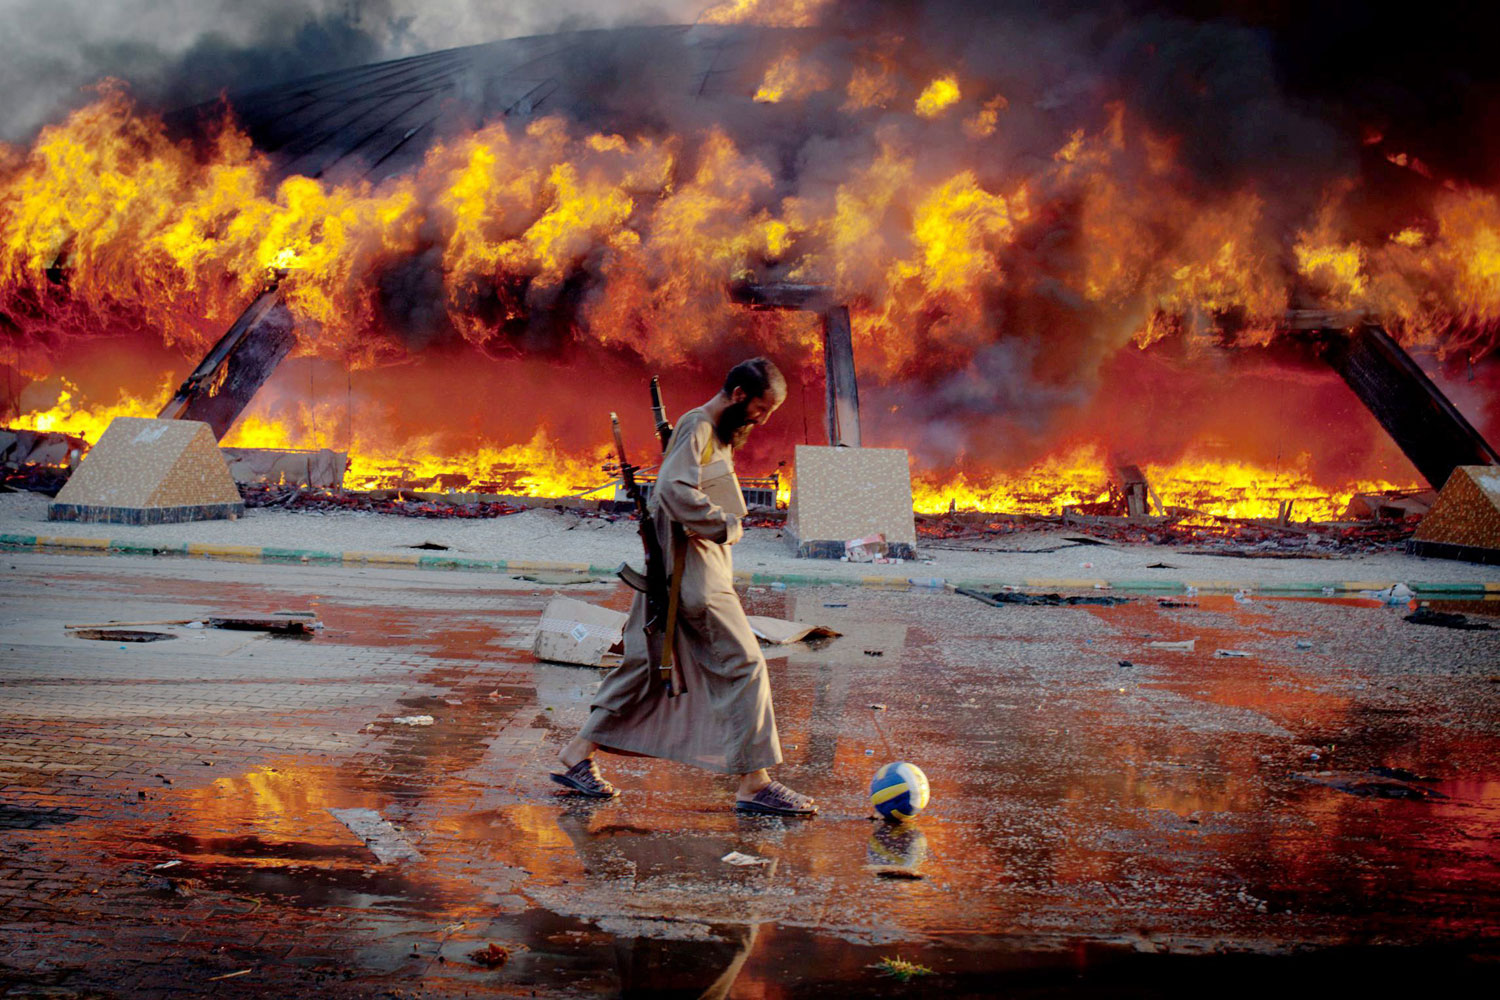 August 23, 2011. An armed rebel fighter kicks a volleyball near Gaddafi's Bab al-Aziziya compound as its engulfed in flames. Libyan rebels captured the palace after days of fighting for control of Tripoli.